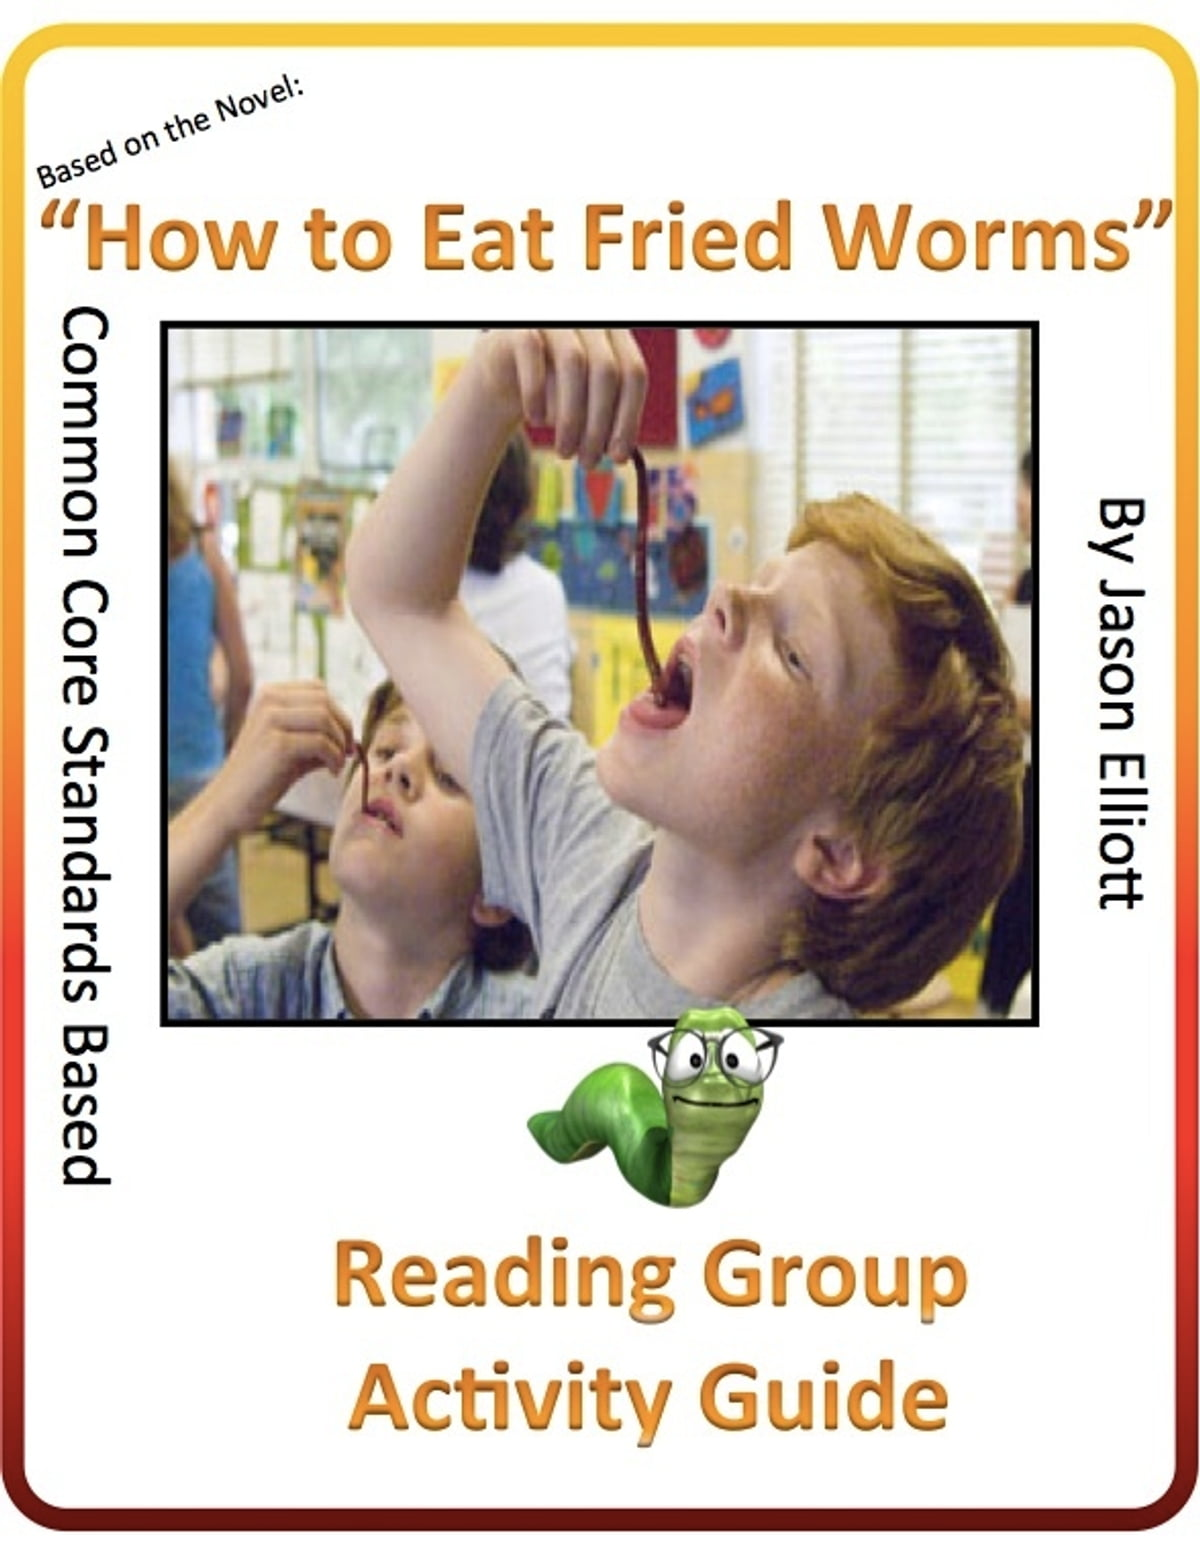 How To Eat Fried Worms Reading Group Activity Guide Ebook By Jason Elliott  9781476302485 Kobo